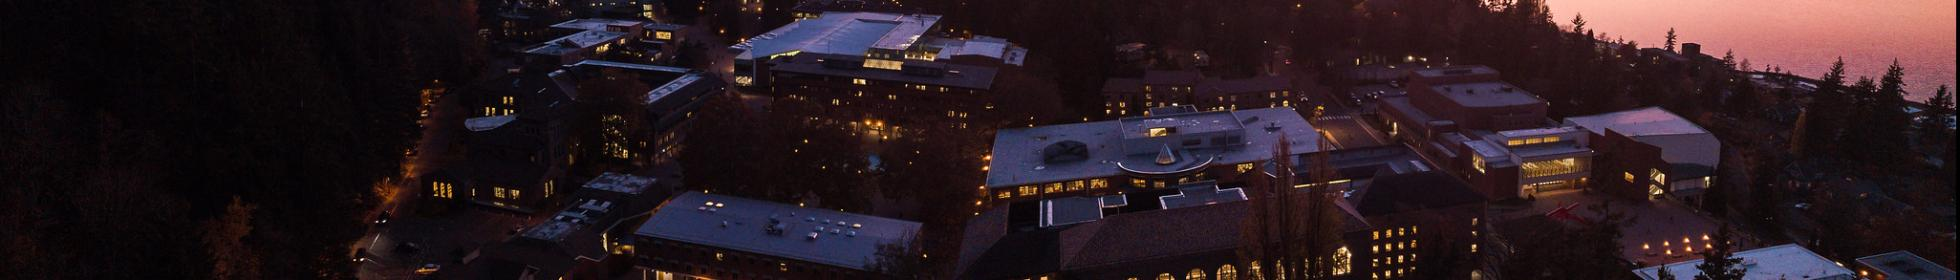 Western Washington University campus, overhead view at sunset